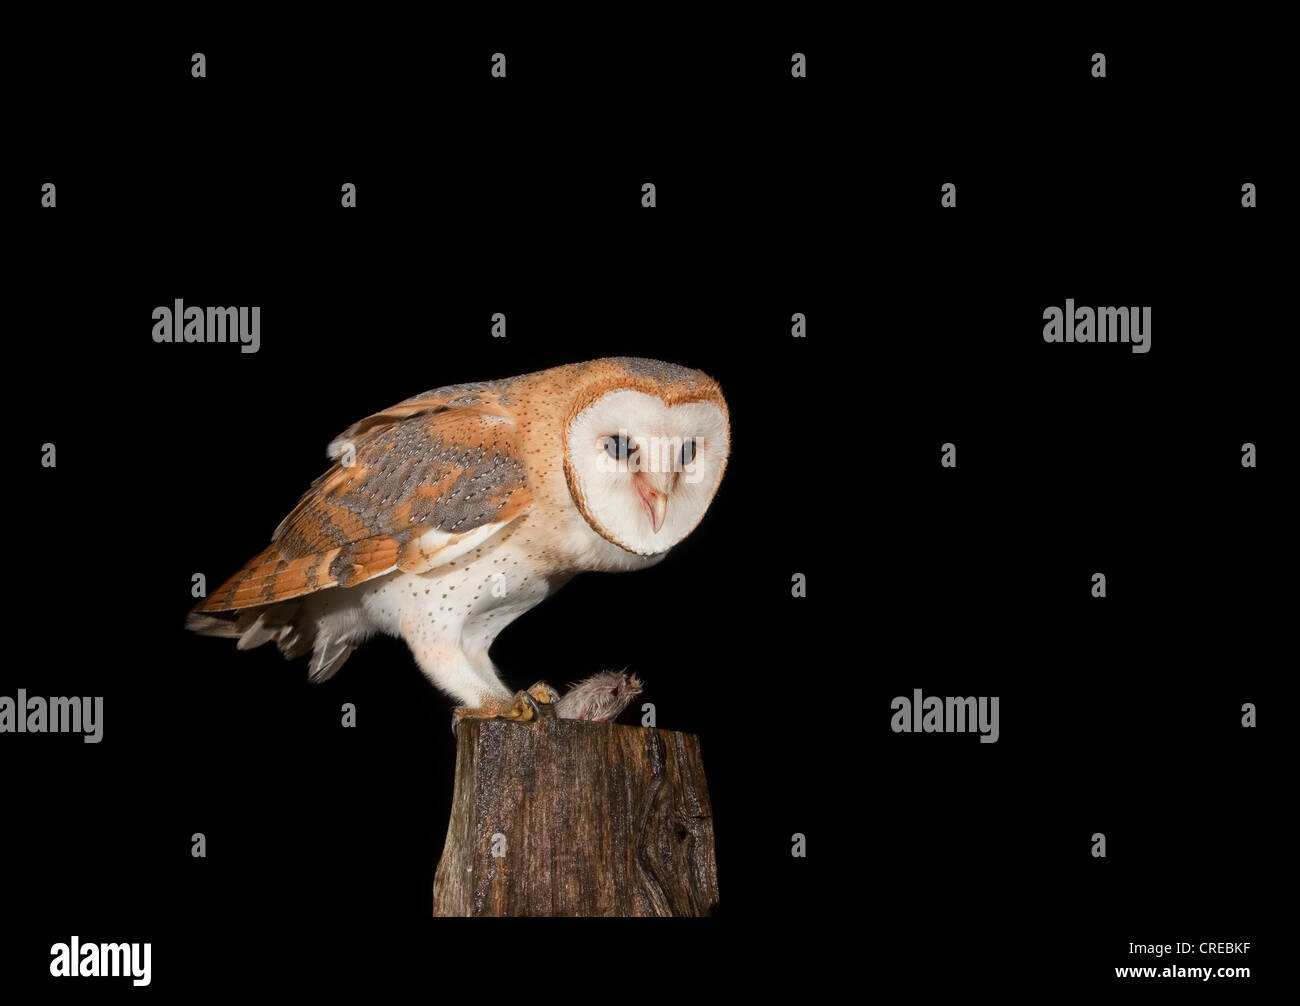 Barn Owl (Tyto alba) feeding on mouse on a fence post, Vulkaneifel district, Rhineland-Palatinate, Germany, Europe - Stock Image